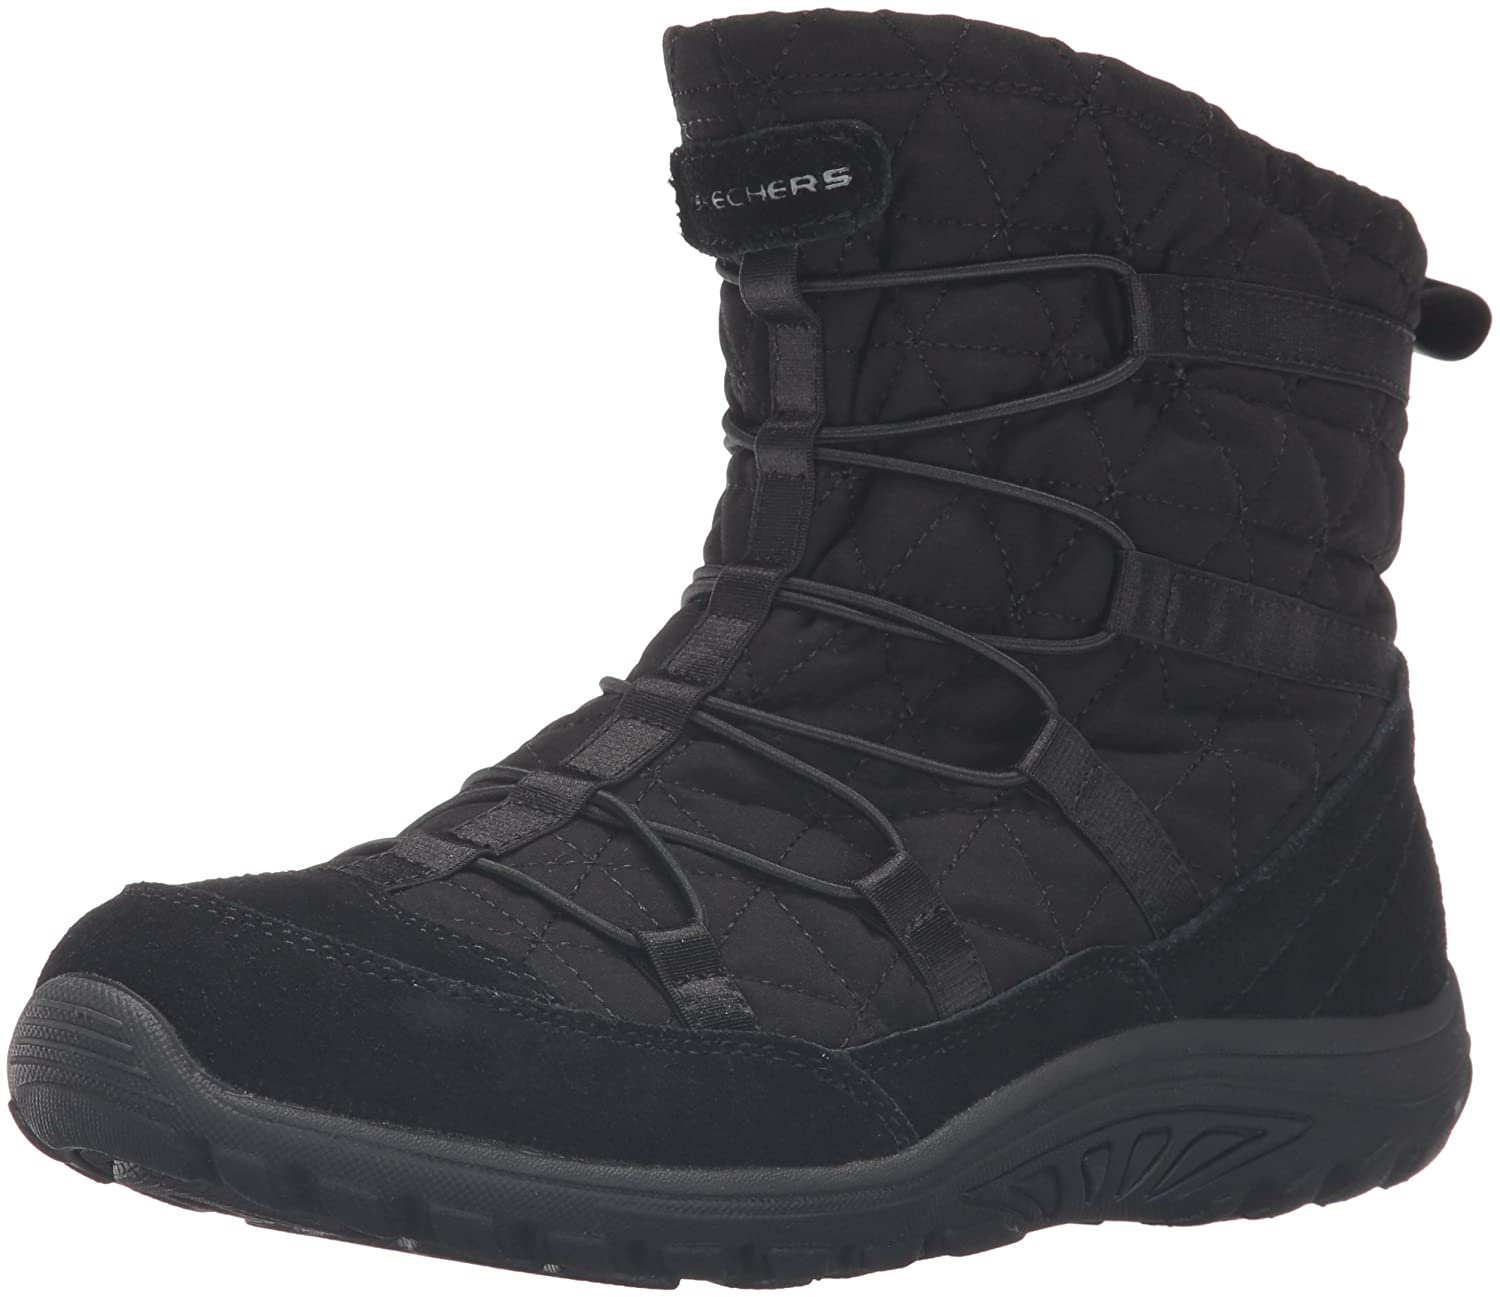 Skechers Womens Reggae Fest Steady Quilted Bungee Ankle Bootie  5 B(M) US|Black